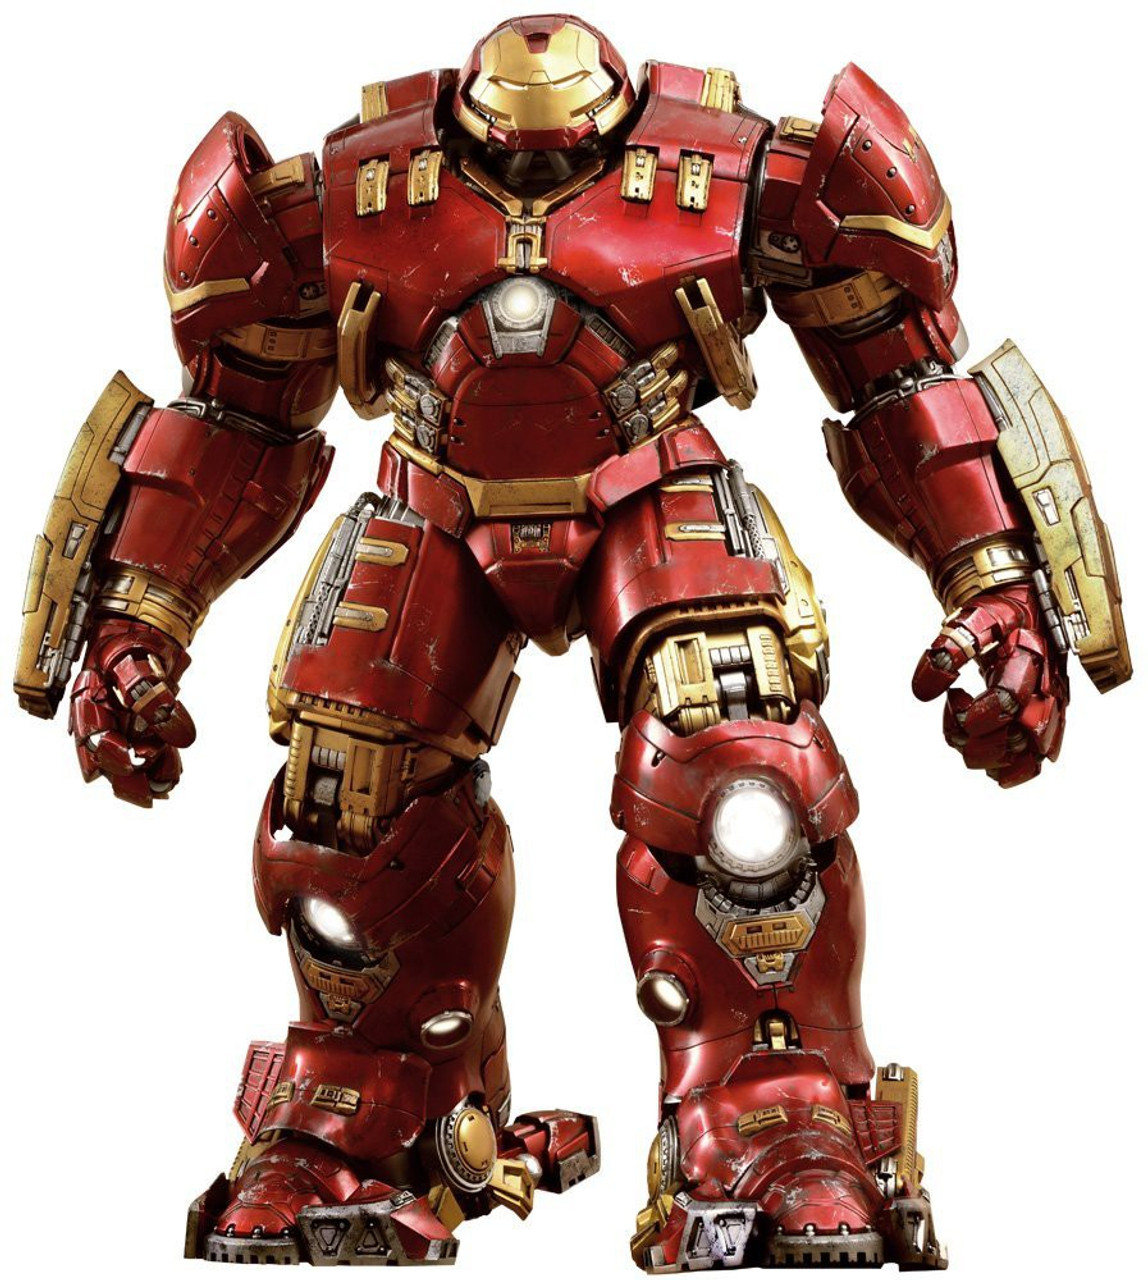 Marvel Avengers Age of Ultron Iron Man Hulkbuster 21-Inch Collectible Figure